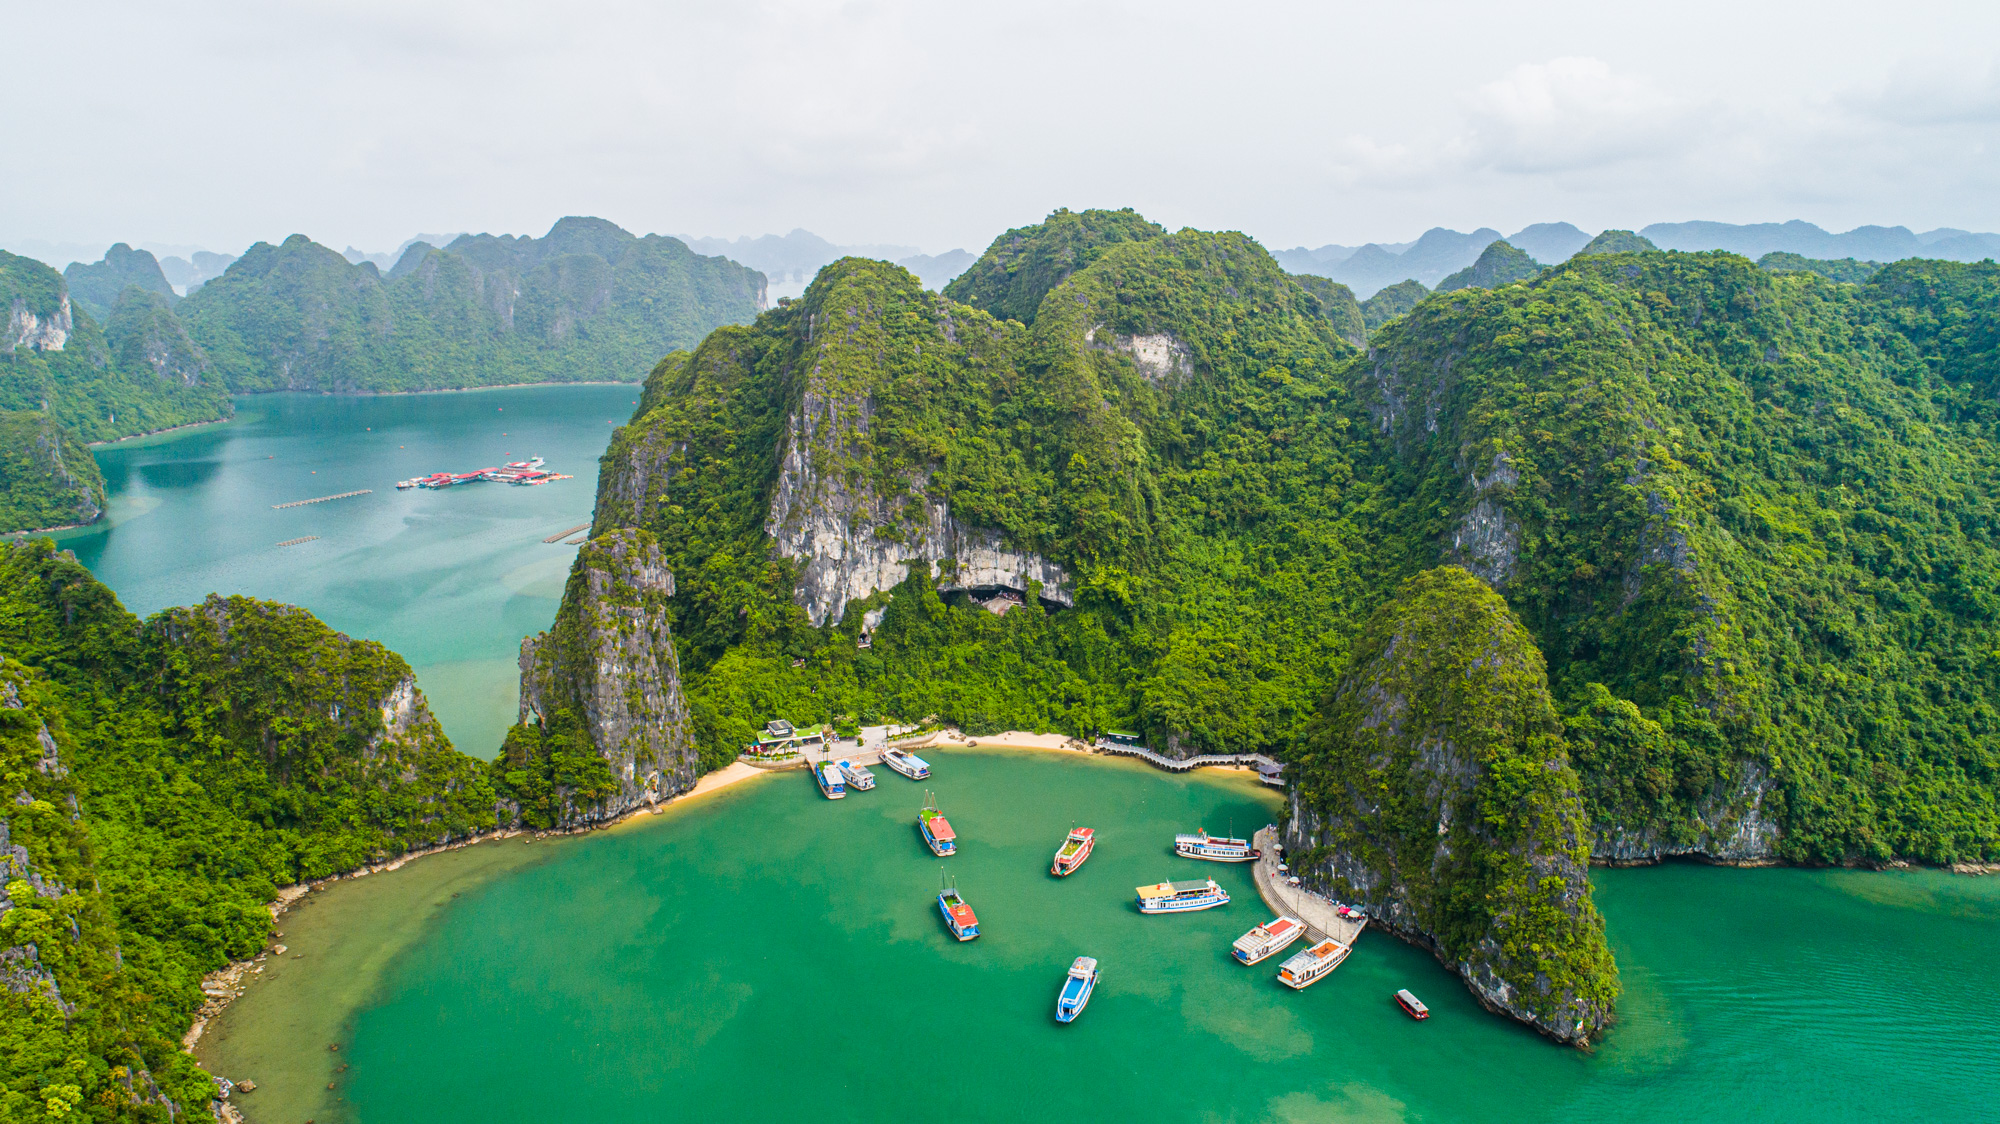 Lan Ha Bay -  5 Must-see Attractions in Indochina 2020